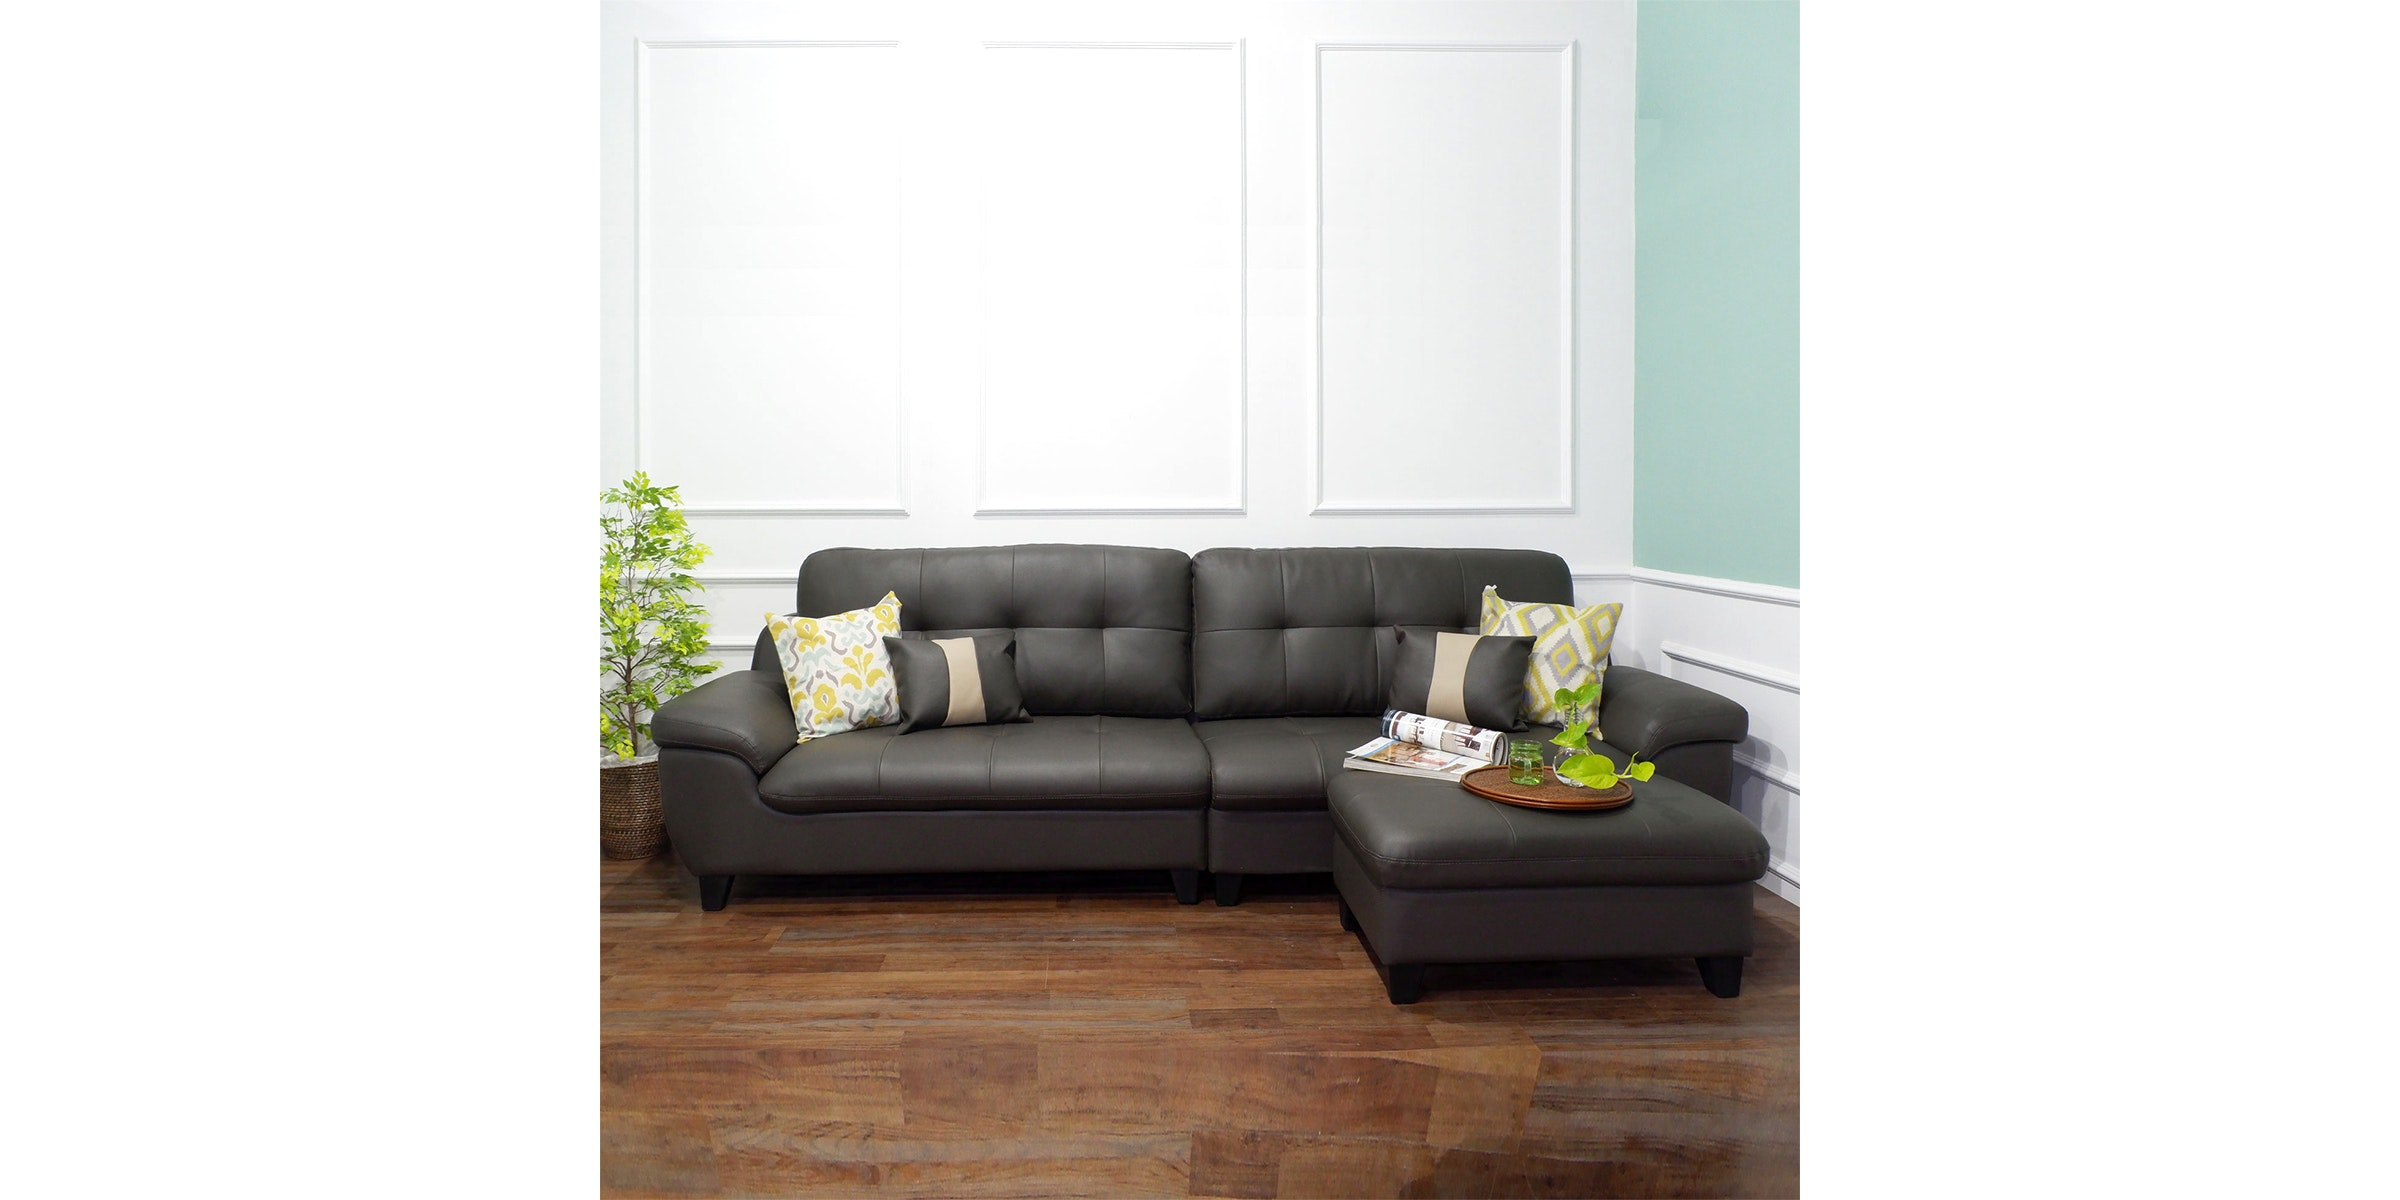 Olive House Sofa Set Mook  8008 - Grey